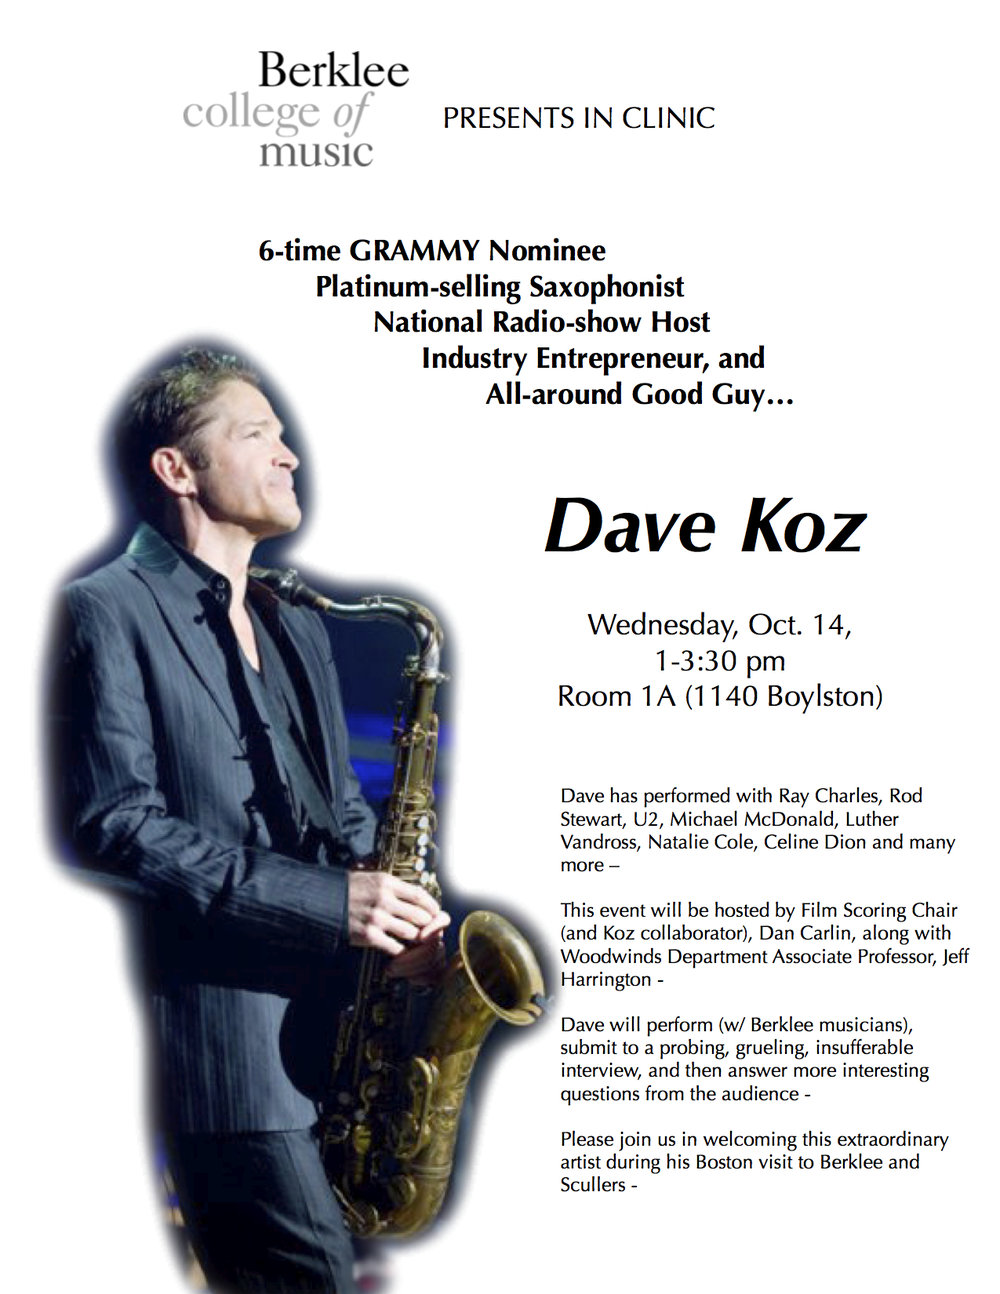 Hosting a clinic for Dave Koz at Berklee